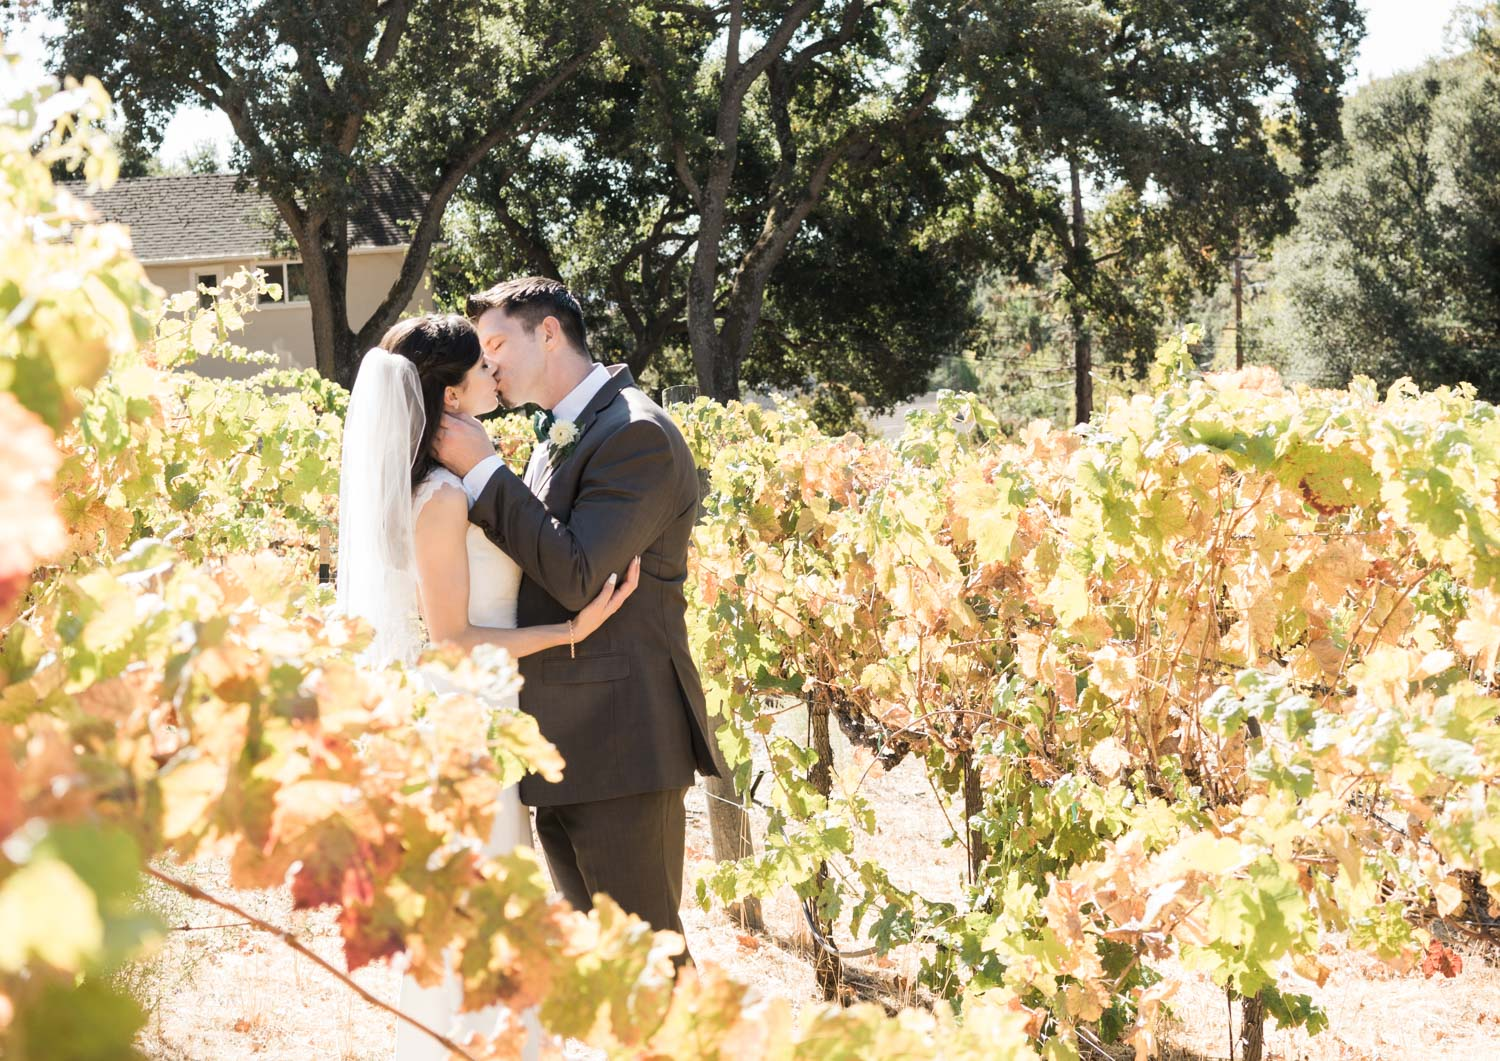 Creative wedding photo ideas for a wedding you may shoot in a winery.